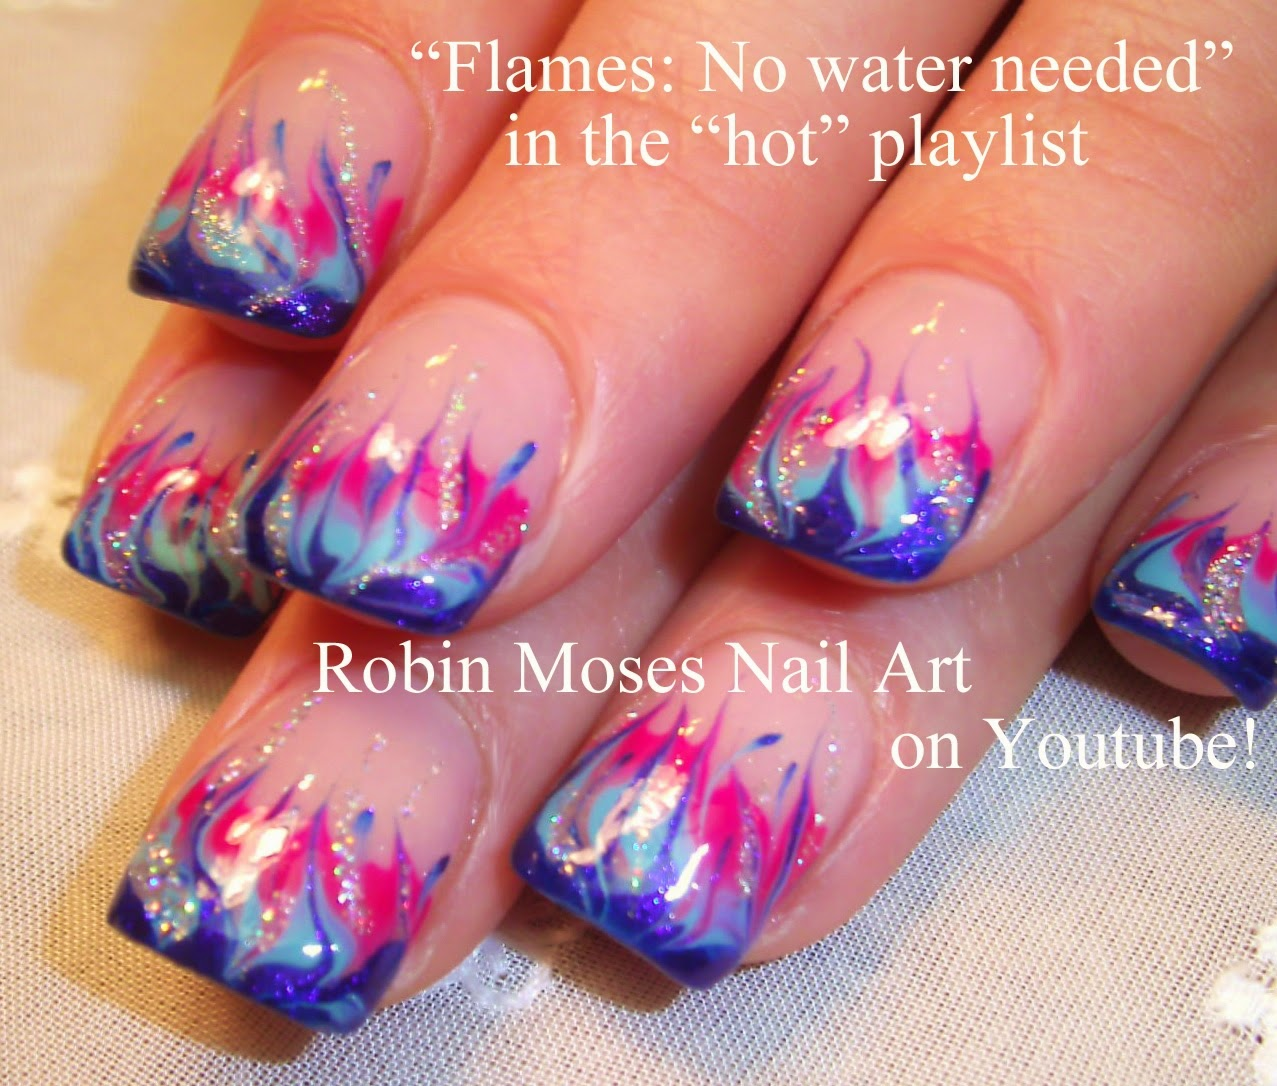 Robin Moses Nail Art February 2015: Robin Moses Nail Art: Practice Your Technique For No Water